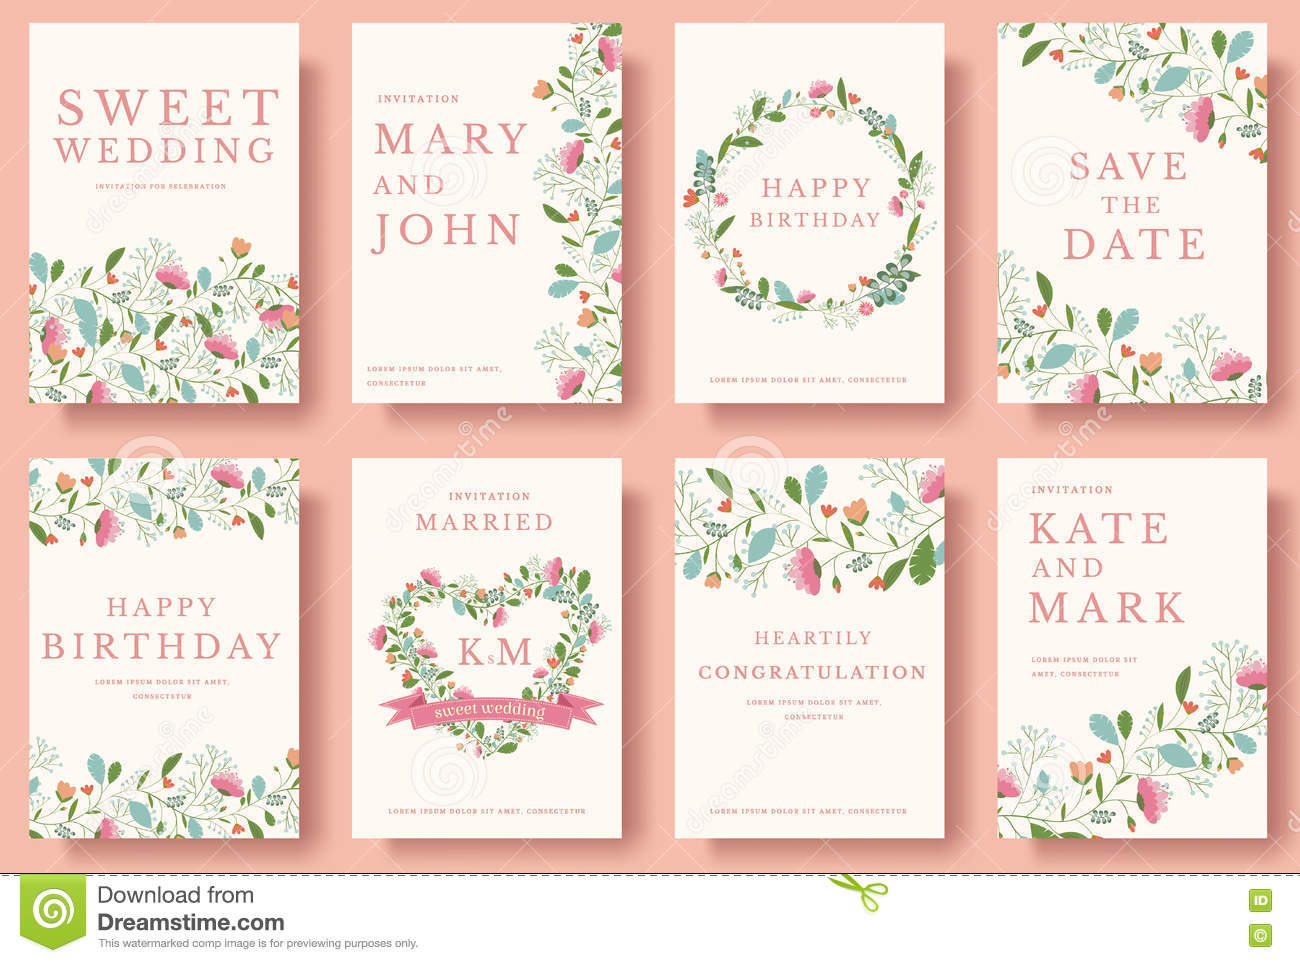 Free Birthday Invitation Cards Download for good invitations layout